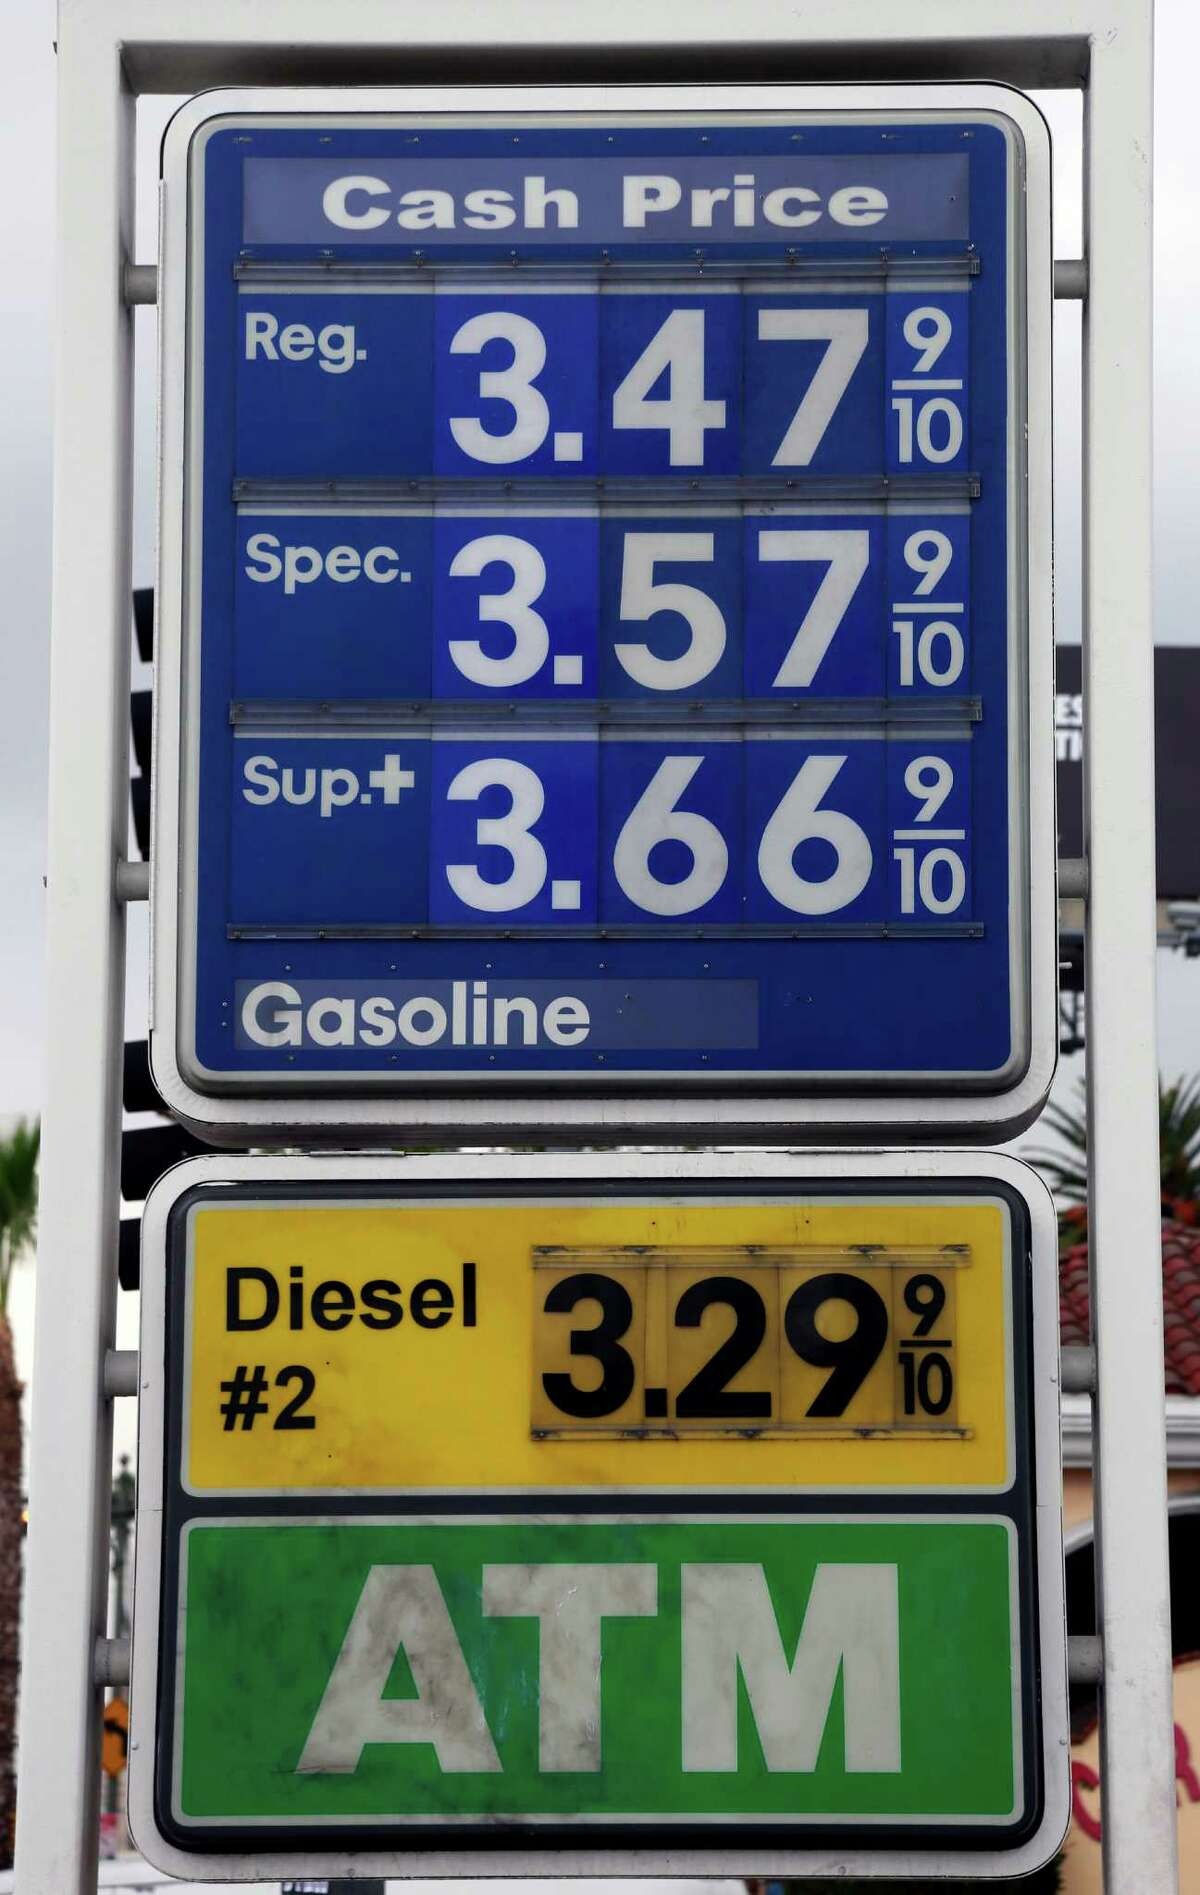 A sign at a gas station in Los Angeles posts the latest gas prices on Friday, Feb. 27, 2015. Gas prices in California soared overnight as a result of a combination of supply-and-demand factors worsened by the shutdown of two refineries that produce a combined 16 percent of the state's gasoline. (AP Photo/Nick Ut)